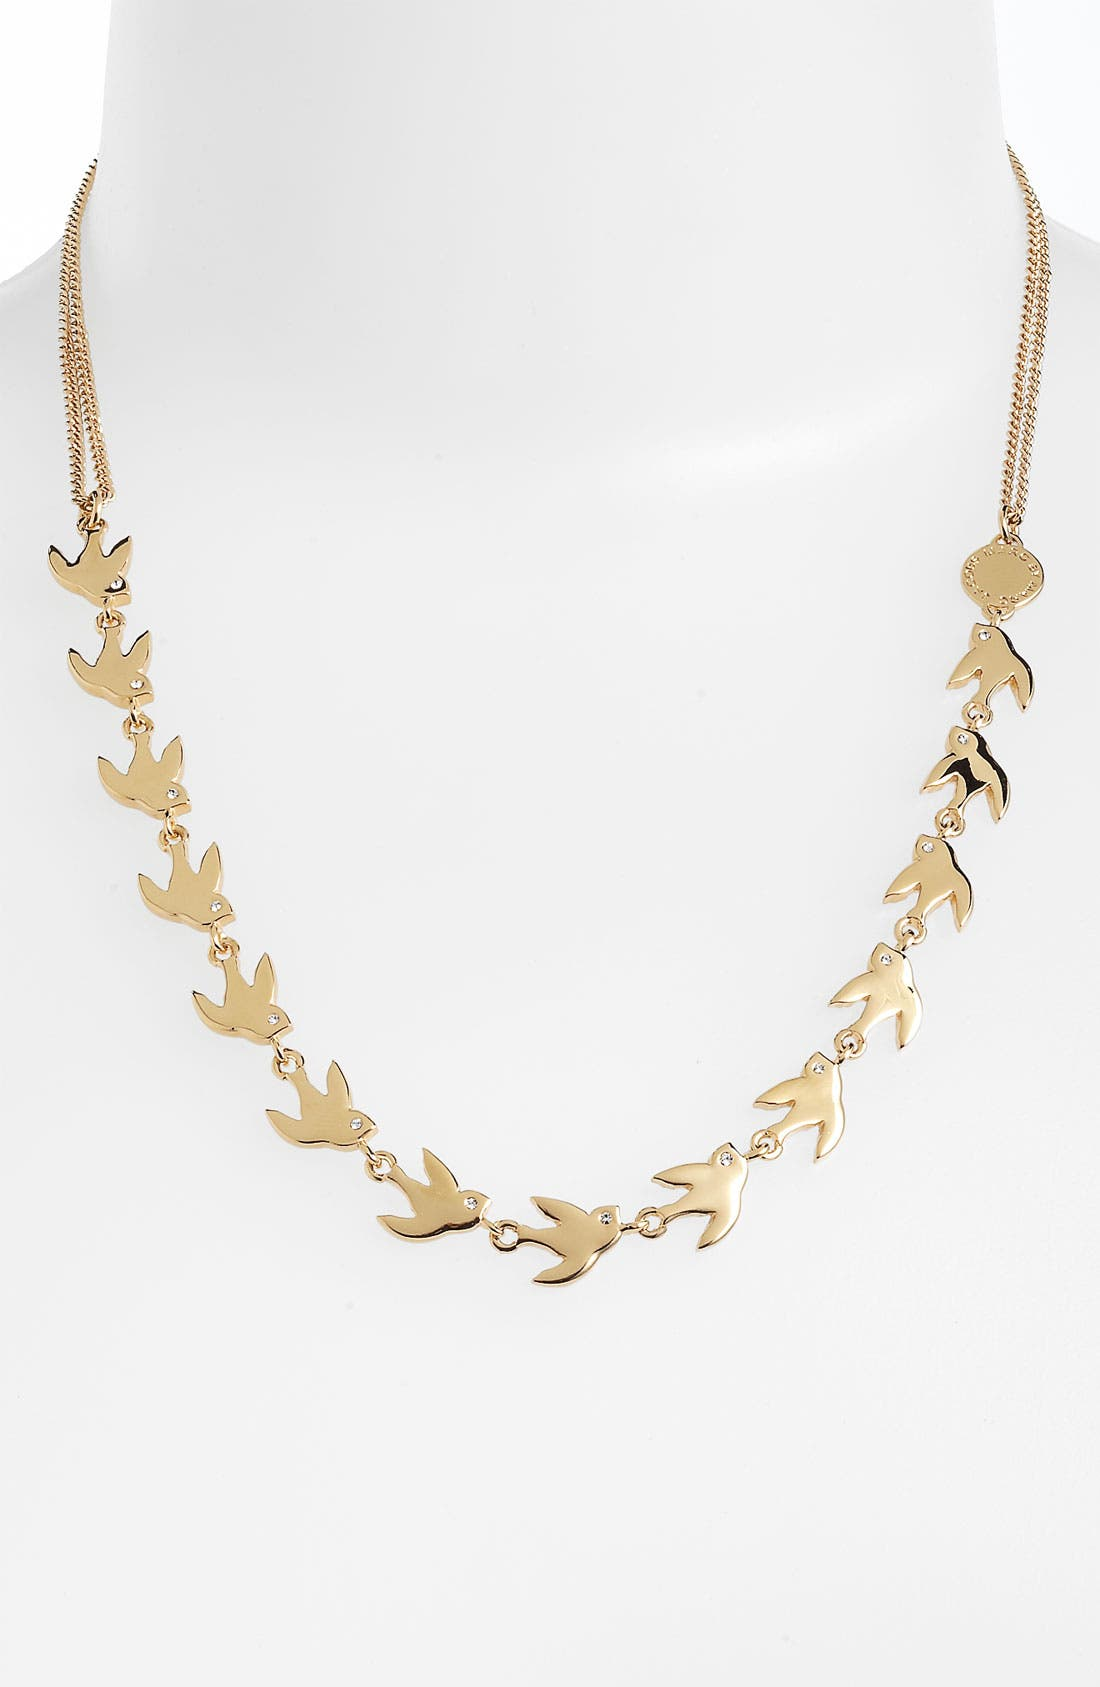 Alternate Image 1 Selected - MARC BY MARC JACOBS 'Oiseau d'Amour - Flight' Station Necklace